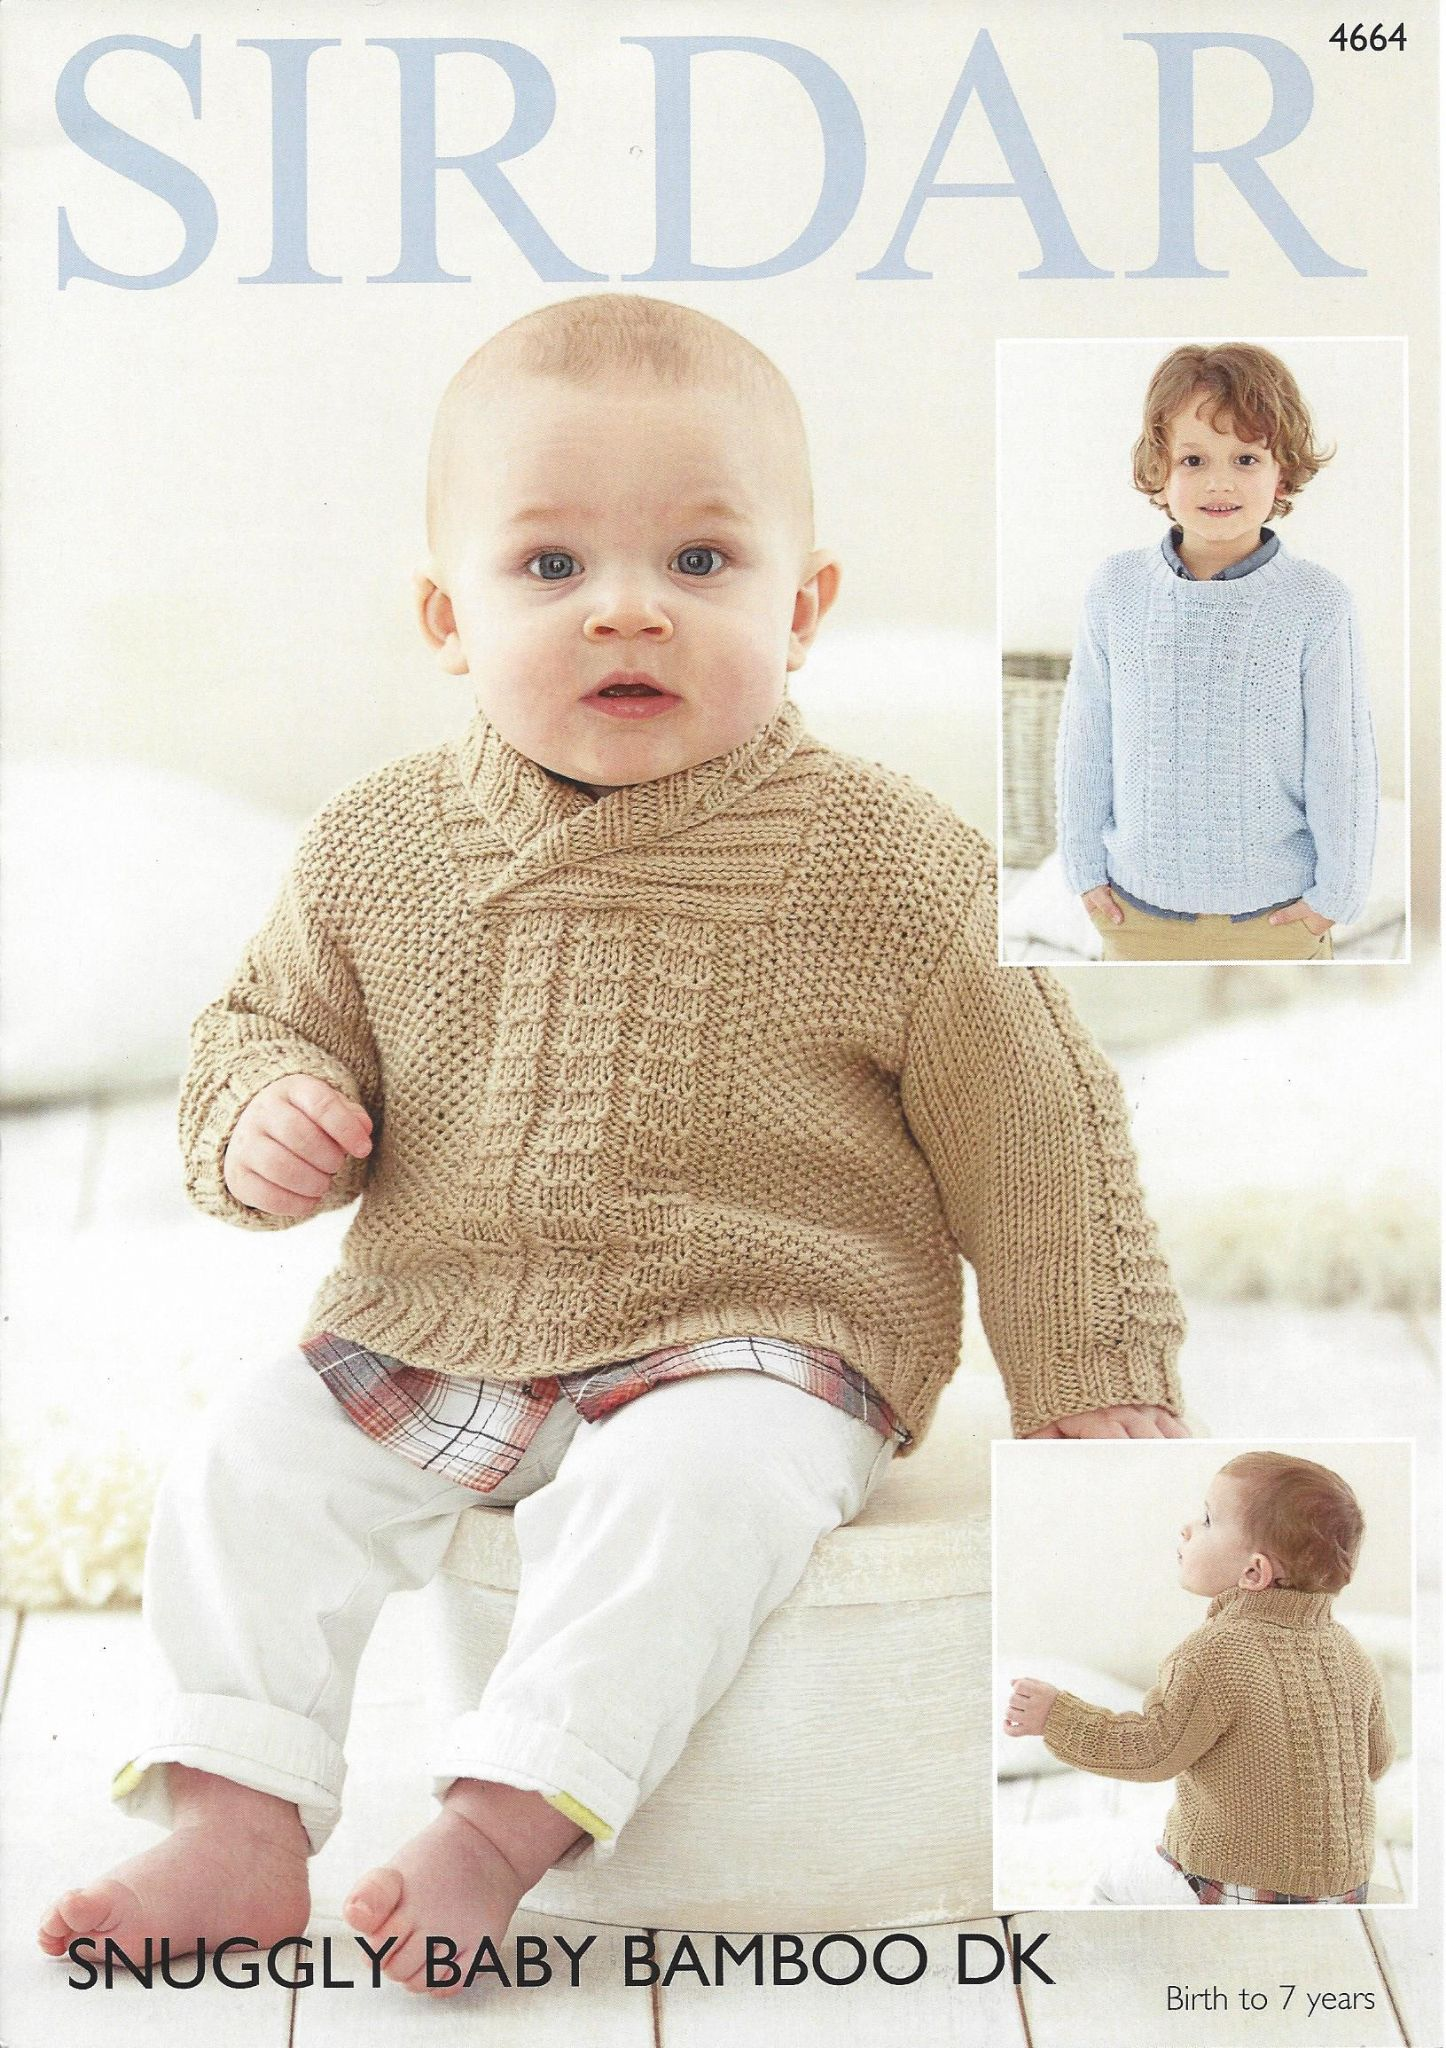 Sirdar Snuggly Baby Bamboo DK - 4664 Sweaters Knitting Pattern